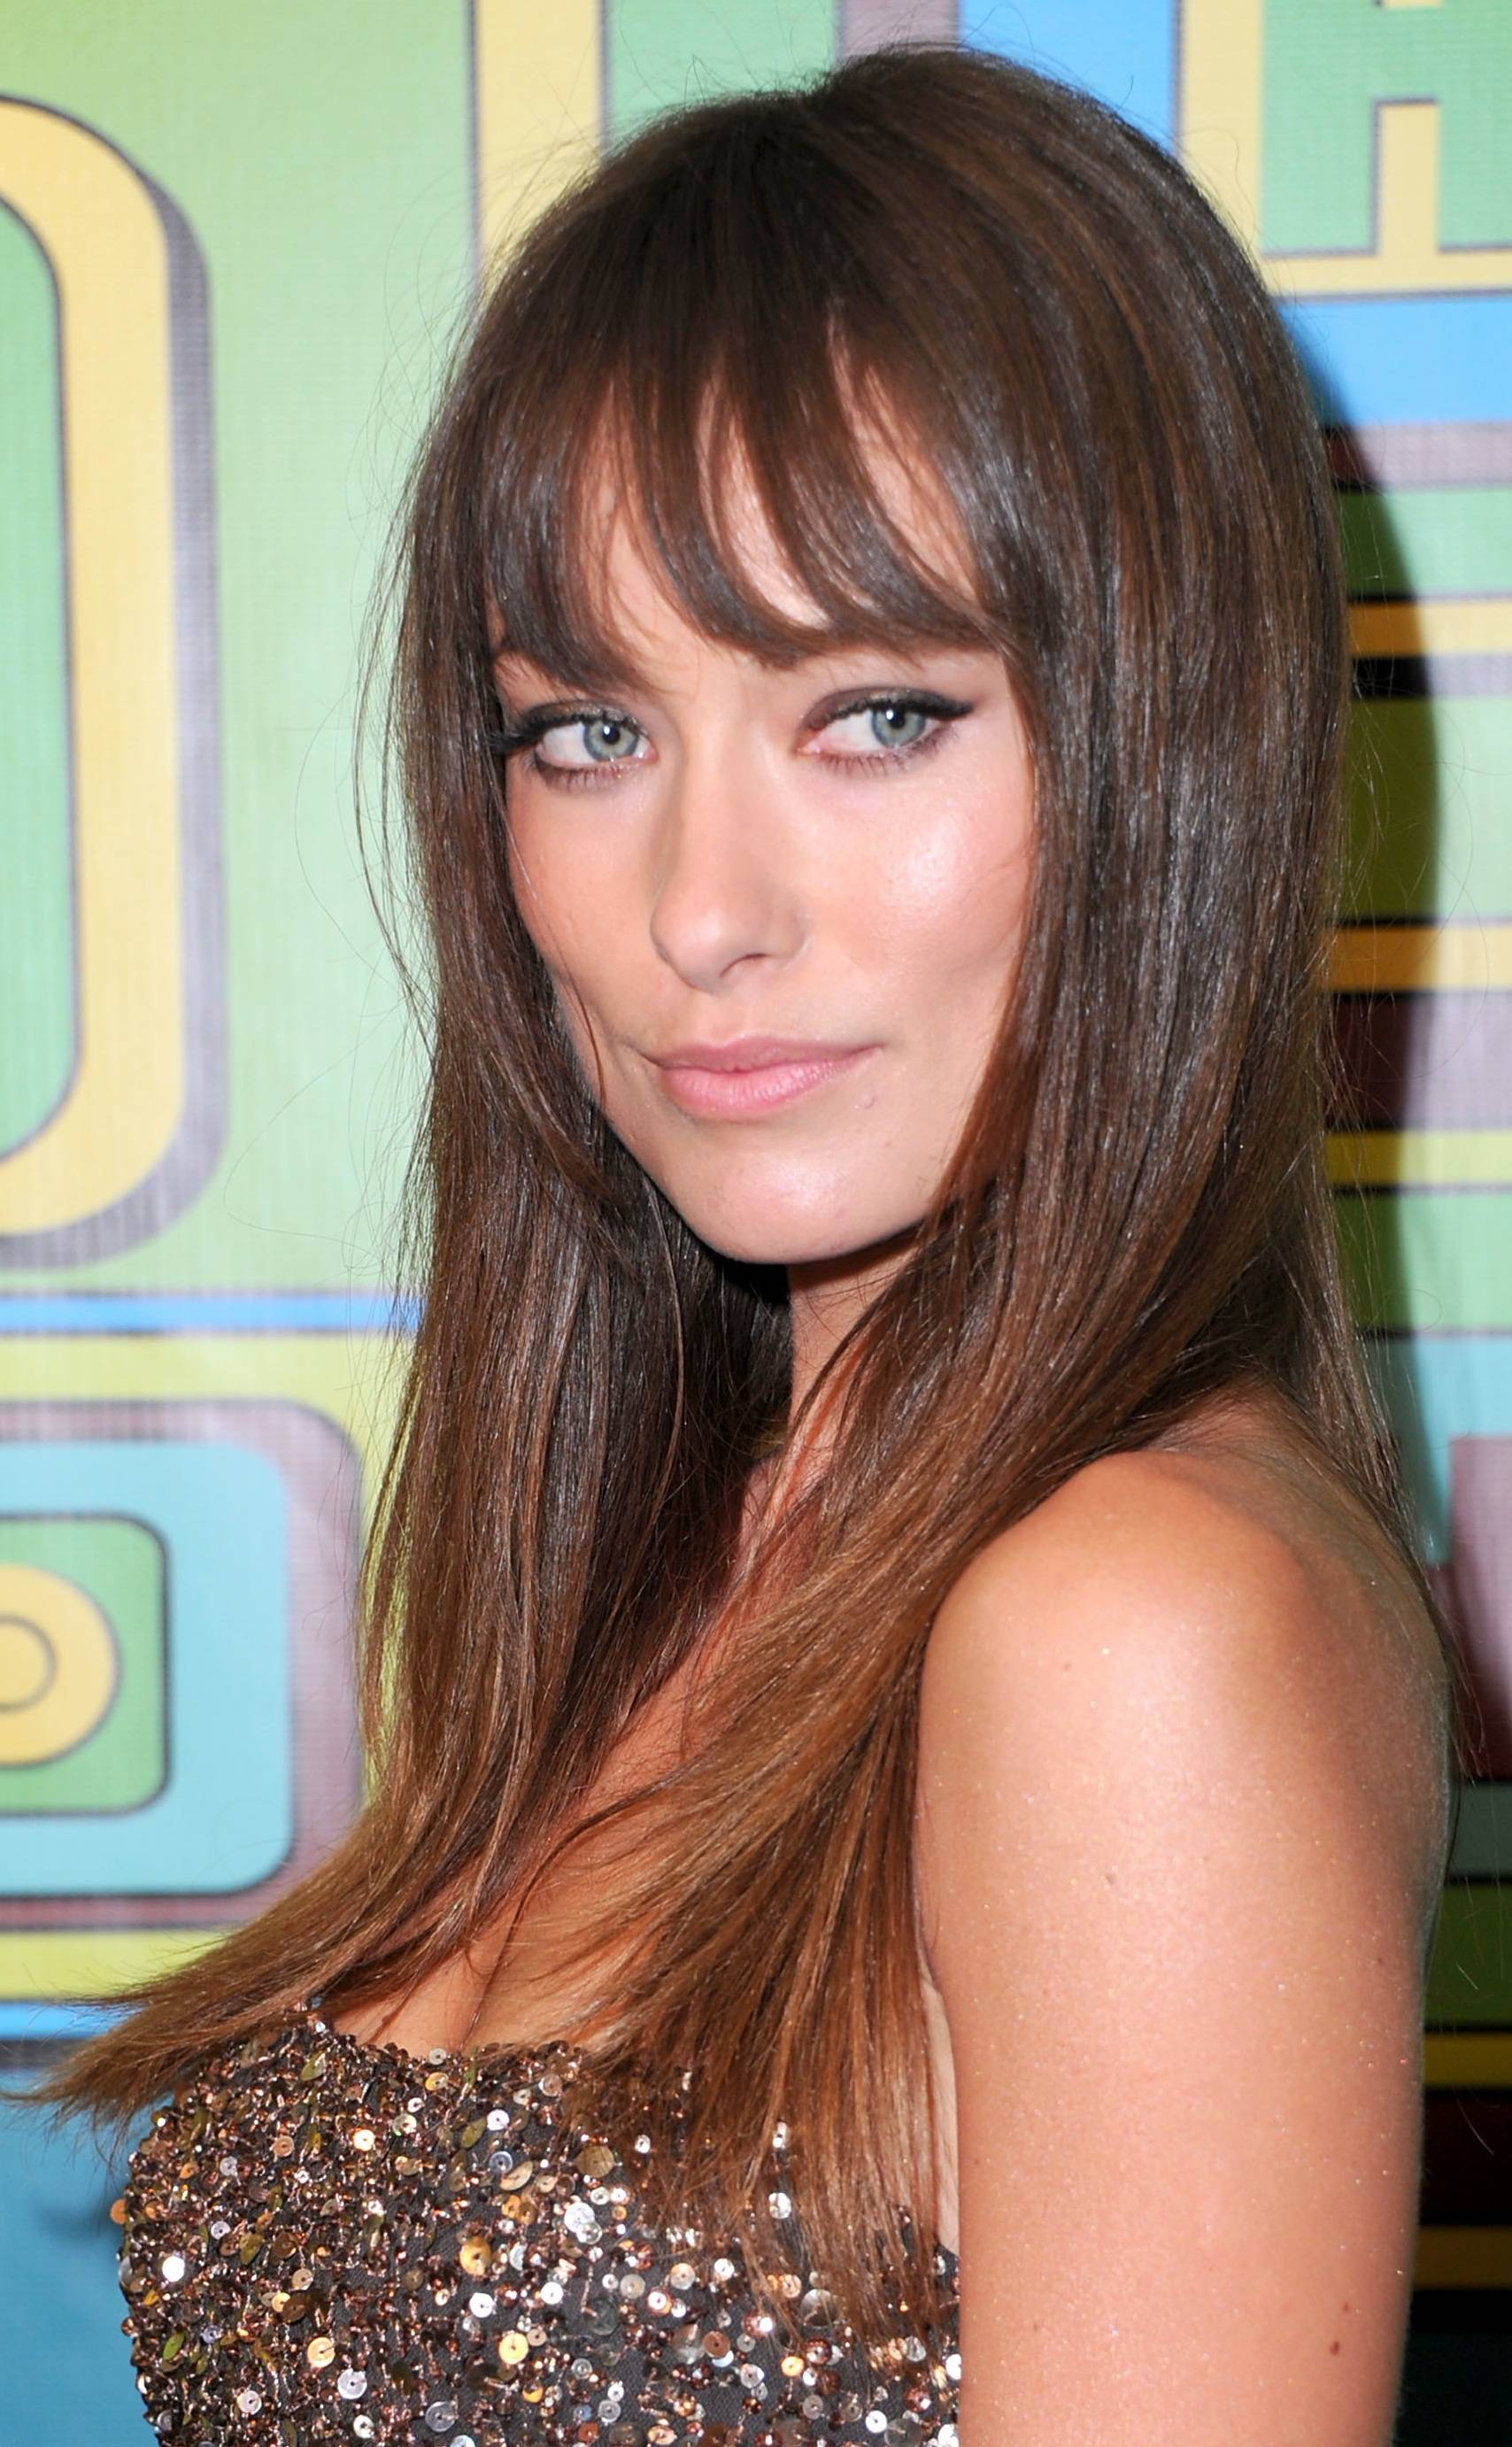 wispy-bangs-hairstyles-round-face-shape